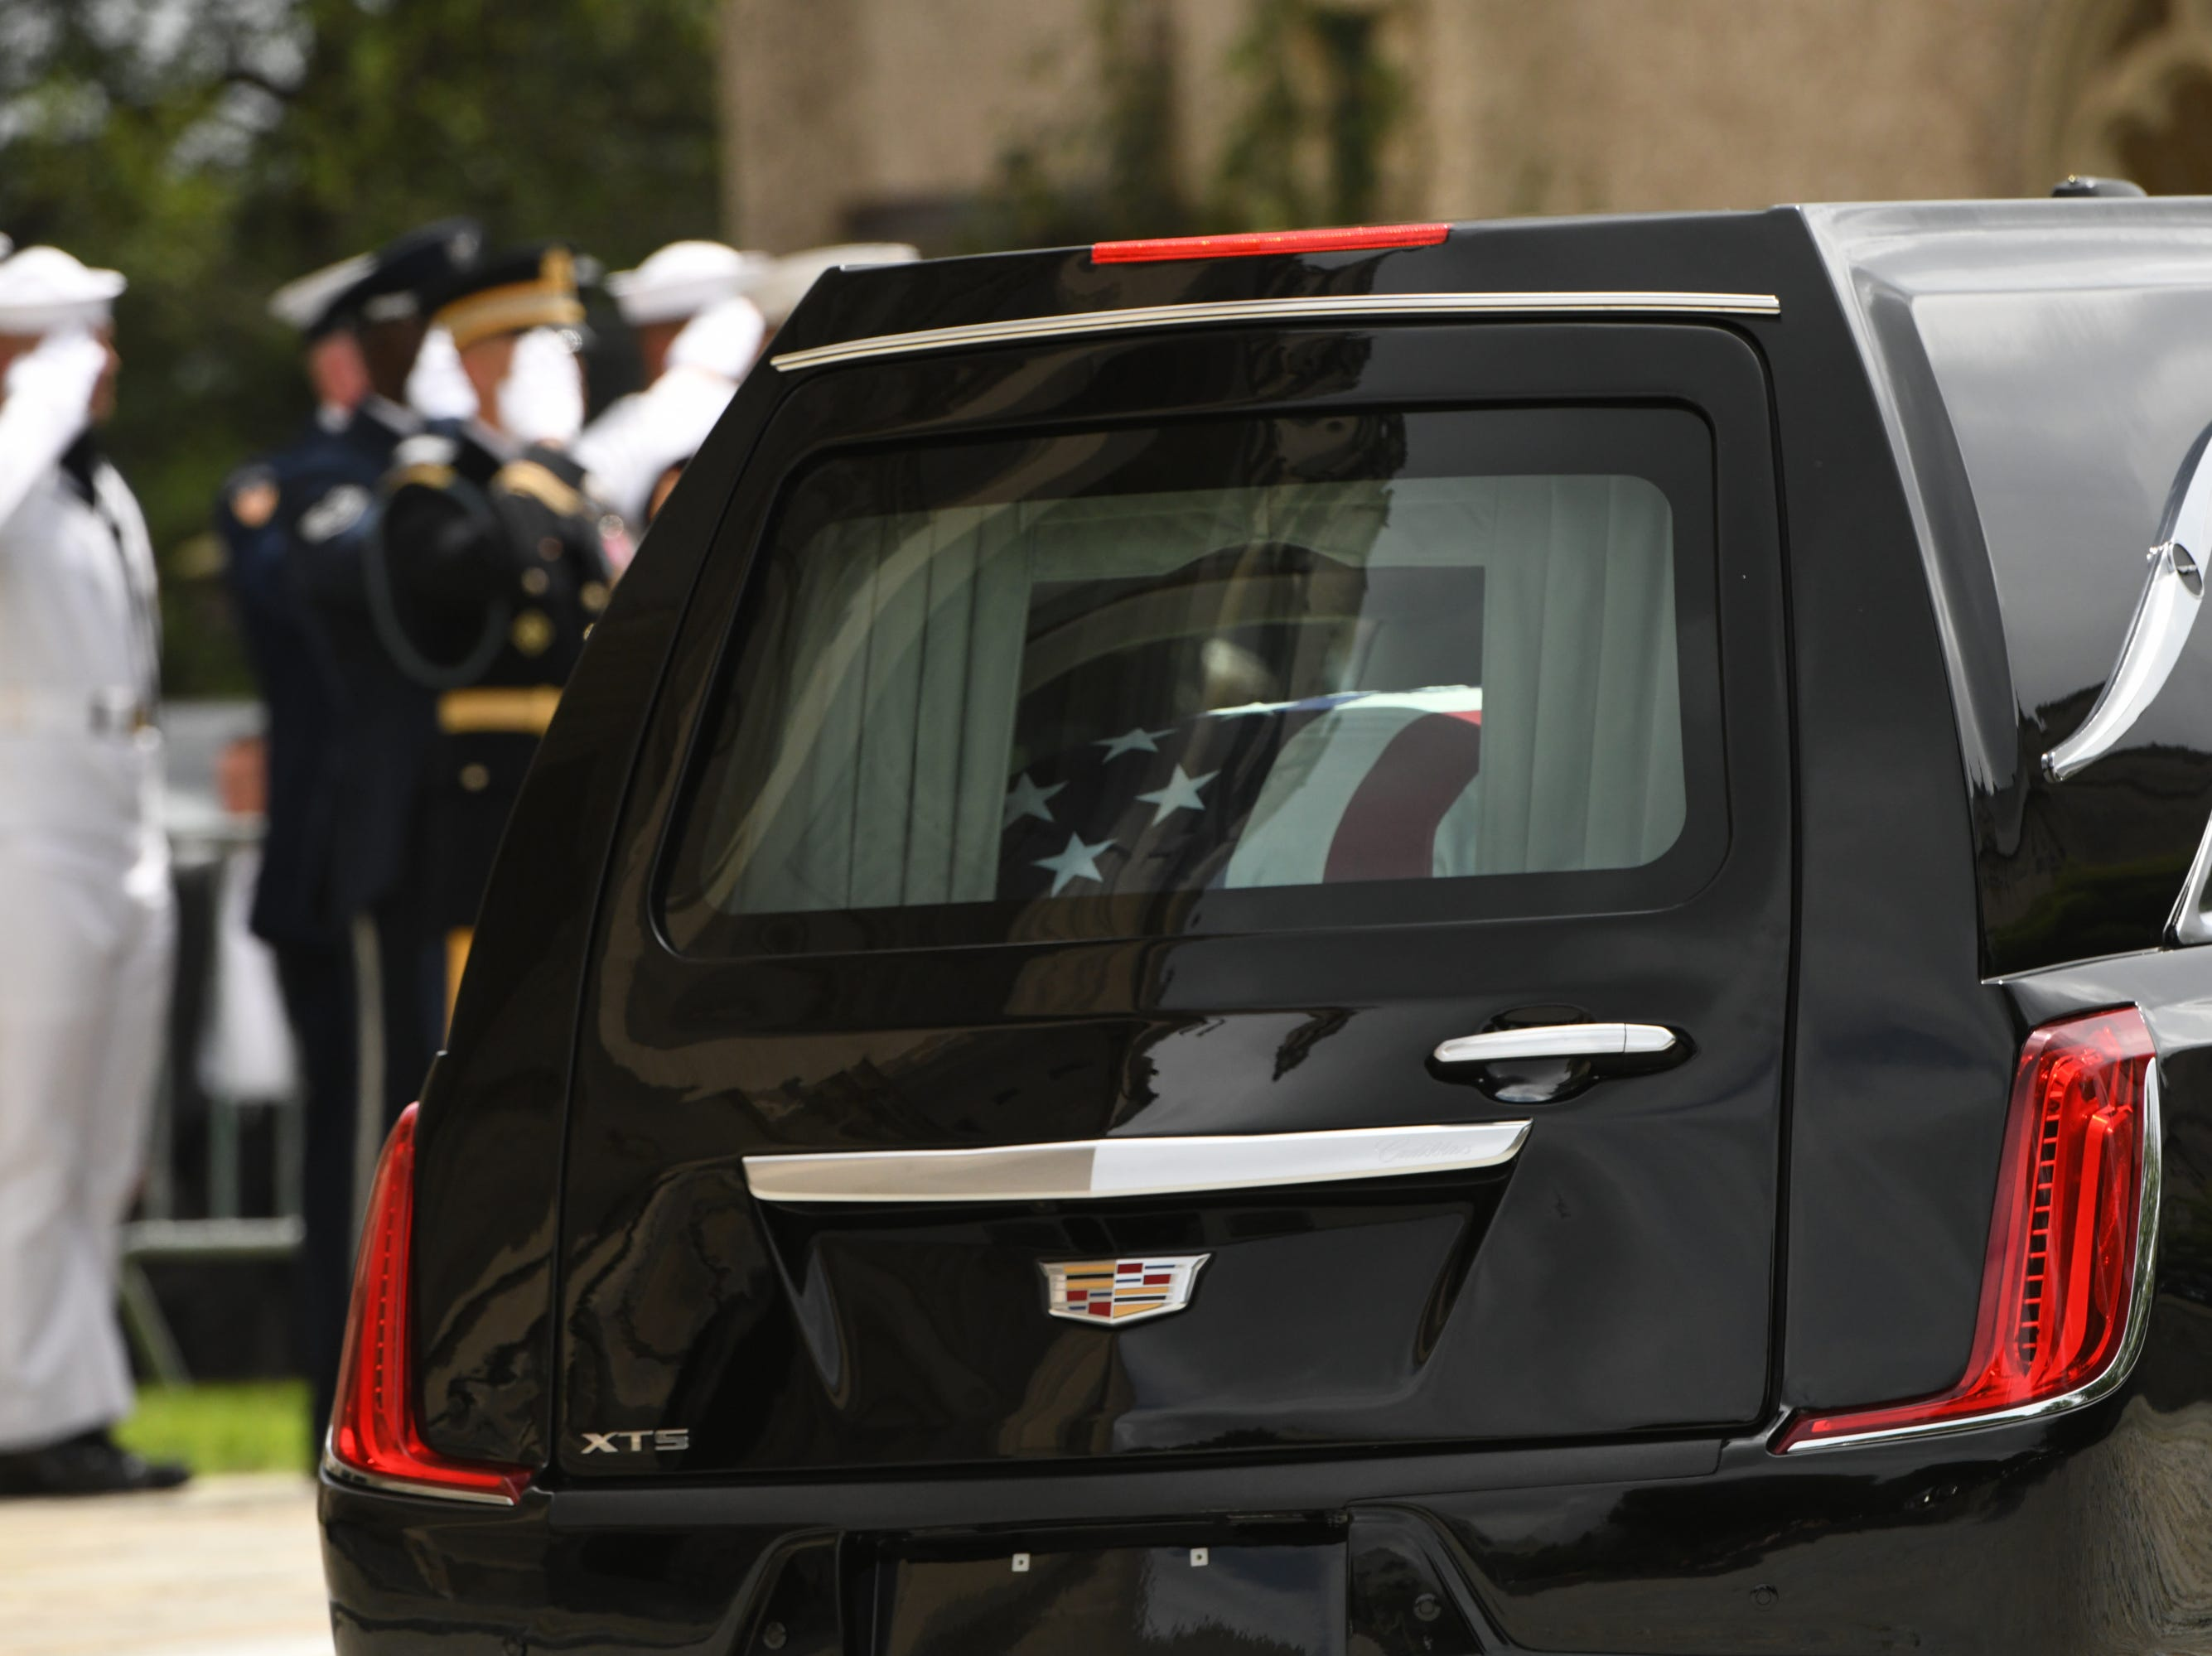 The hearse carrying John McCain leaves the memorial service at the National Cathedral.